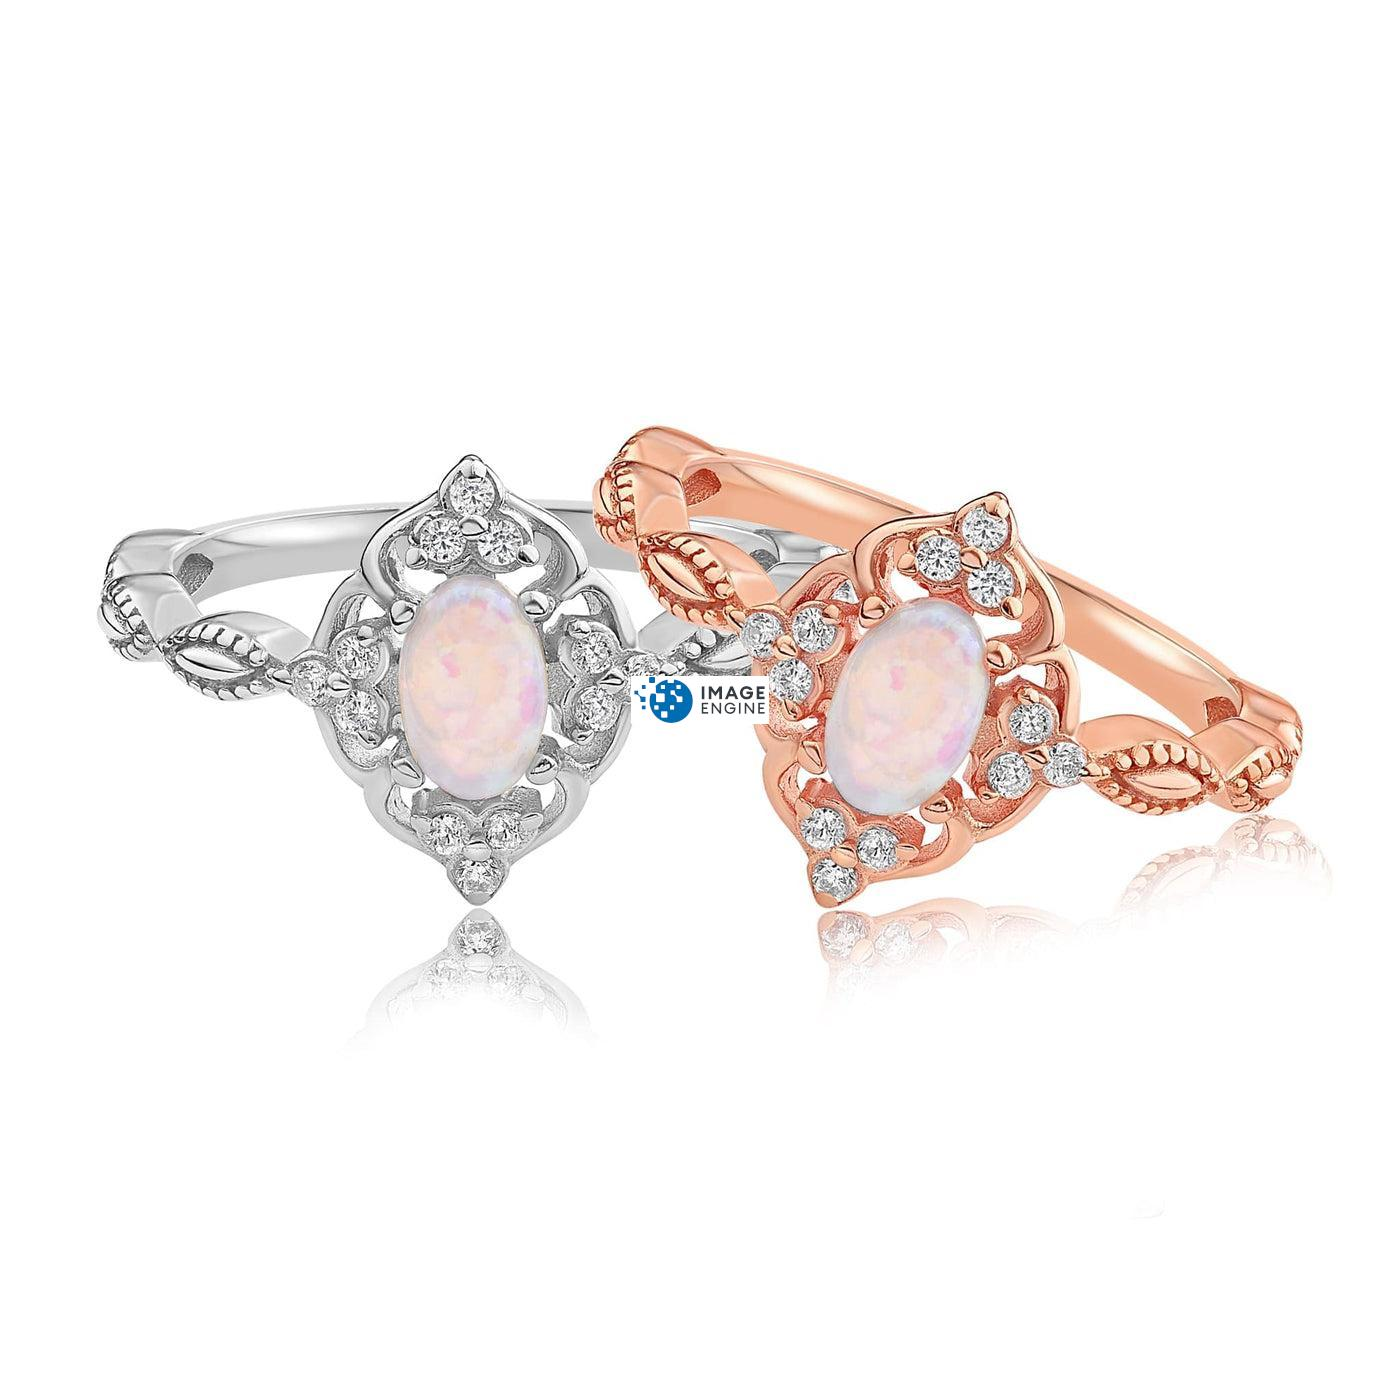 Blue Opal Carved Ring - Front View Side by Side - 18K Rose Gold Vermeil and 925 Sterling Silver